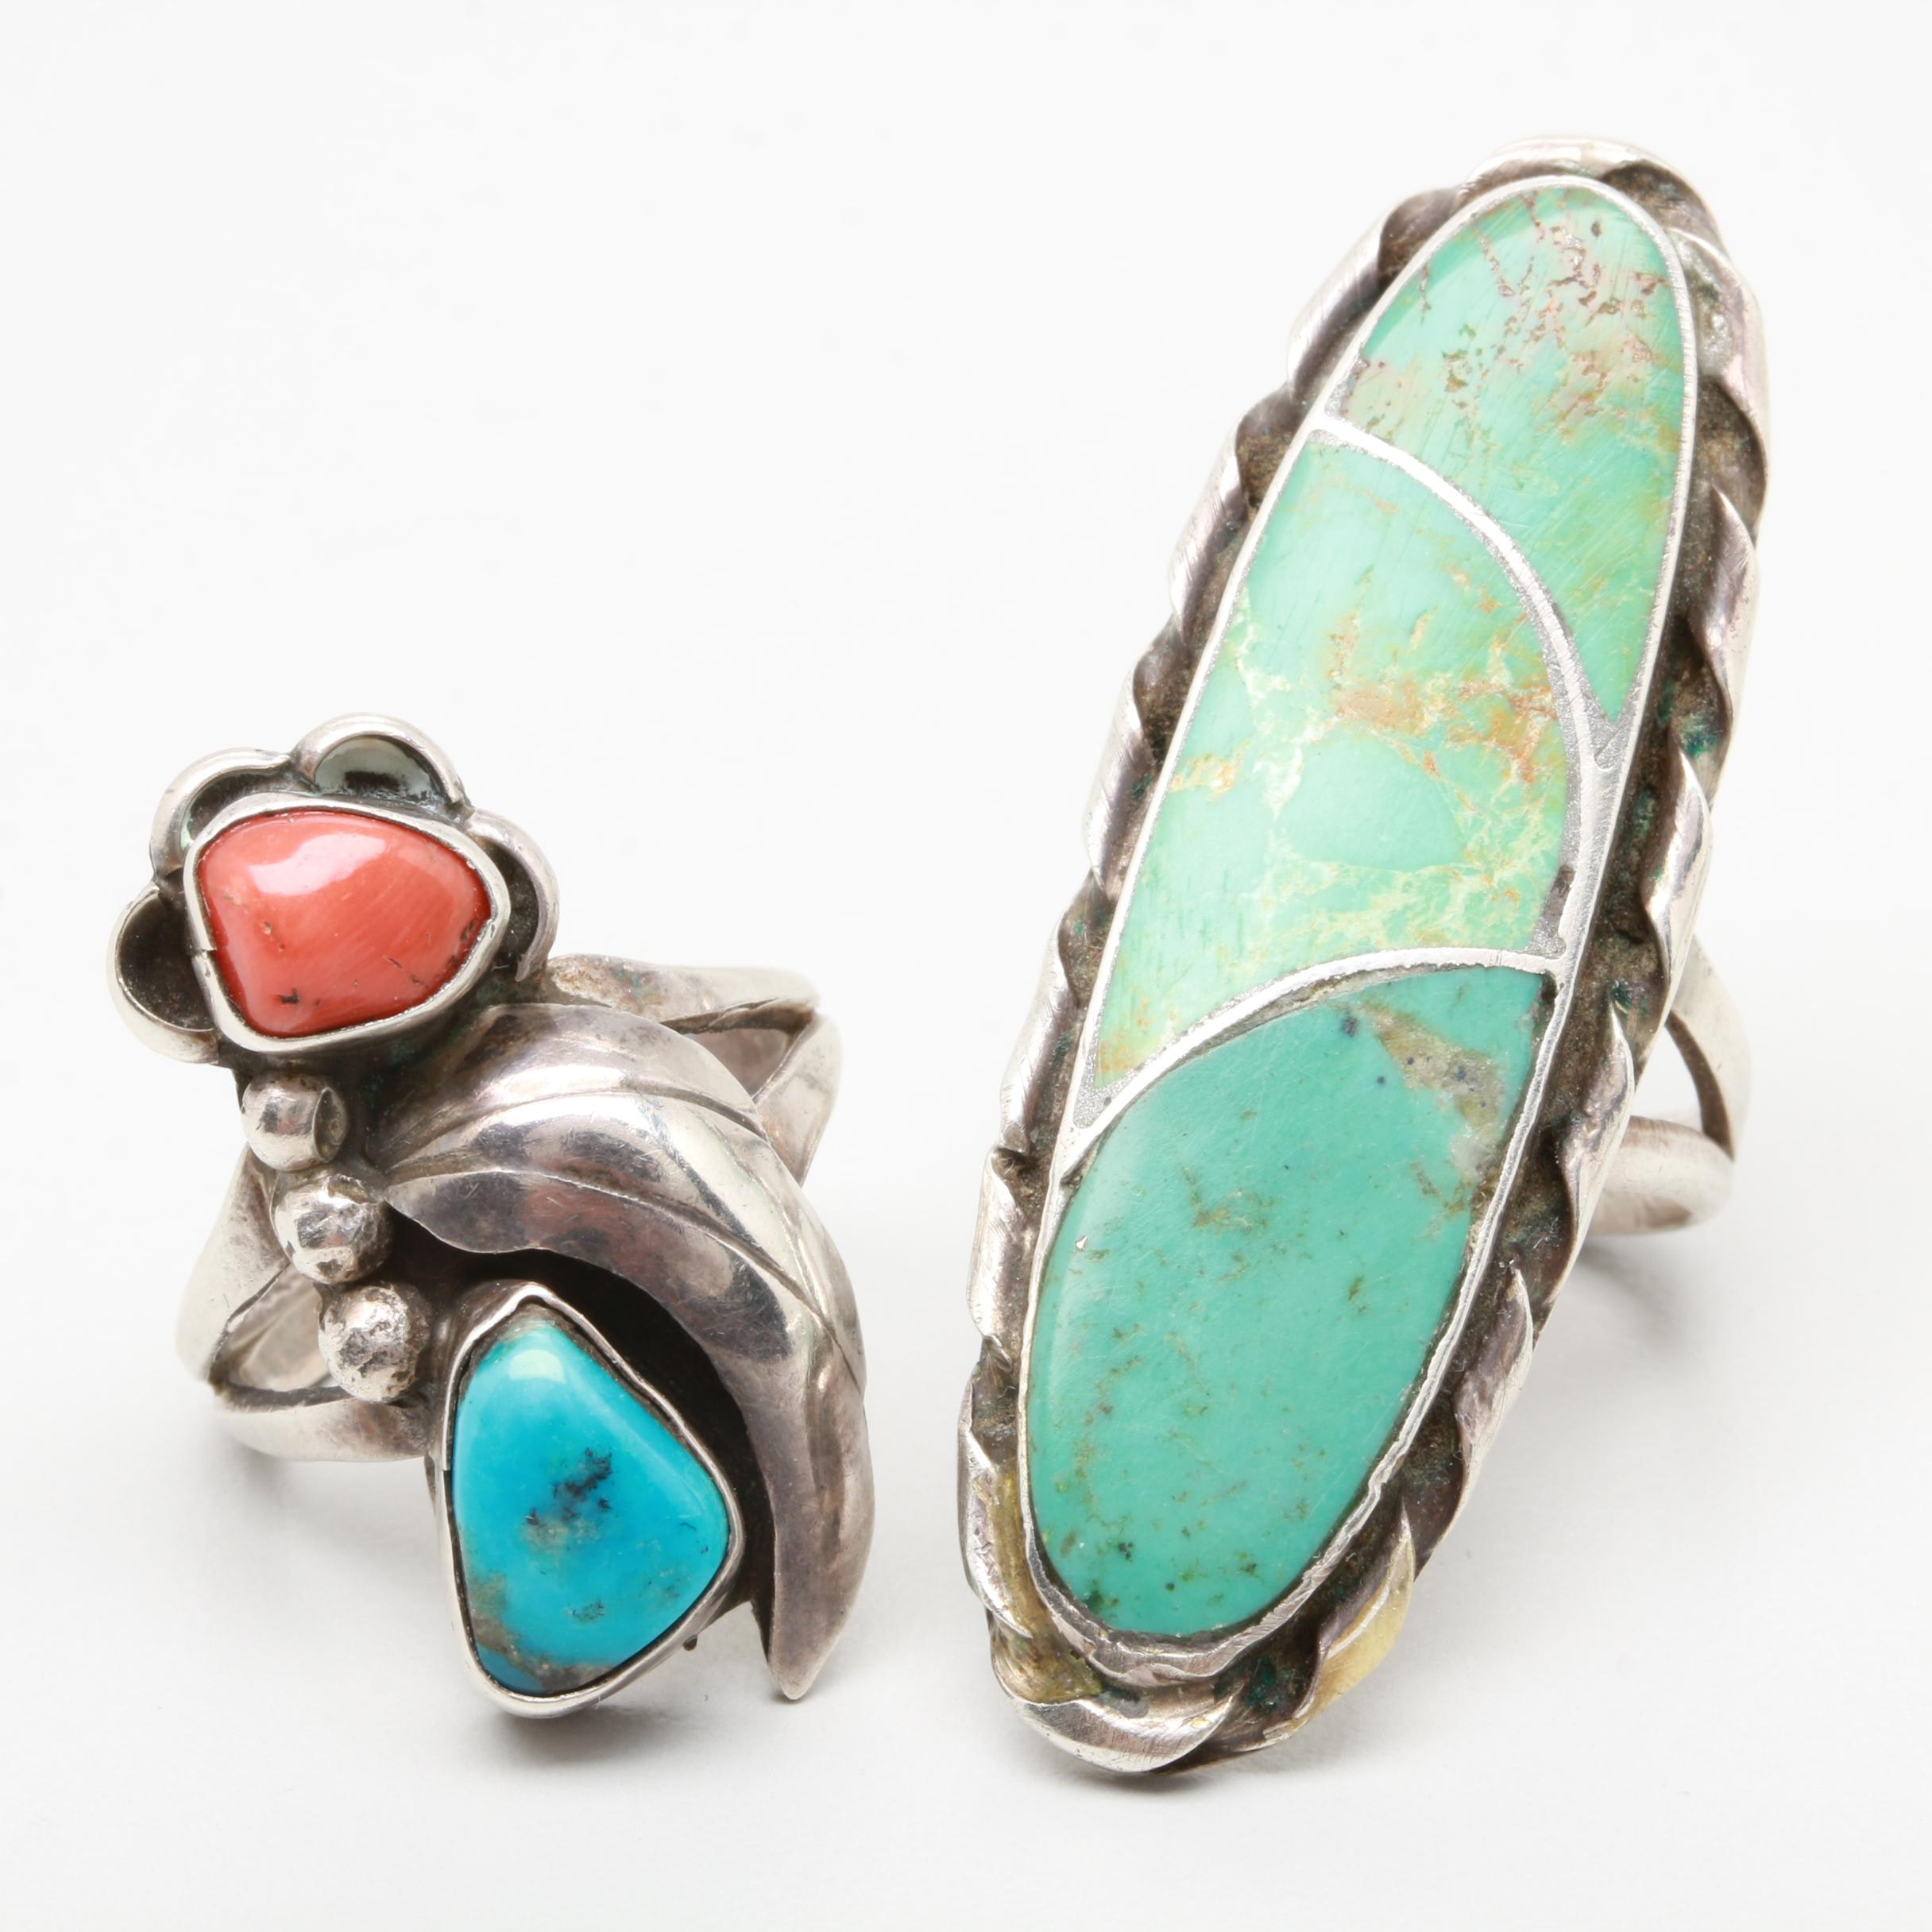 Norman Lee Navajo Diné Sterling Silver Turquoise and Coral Rings